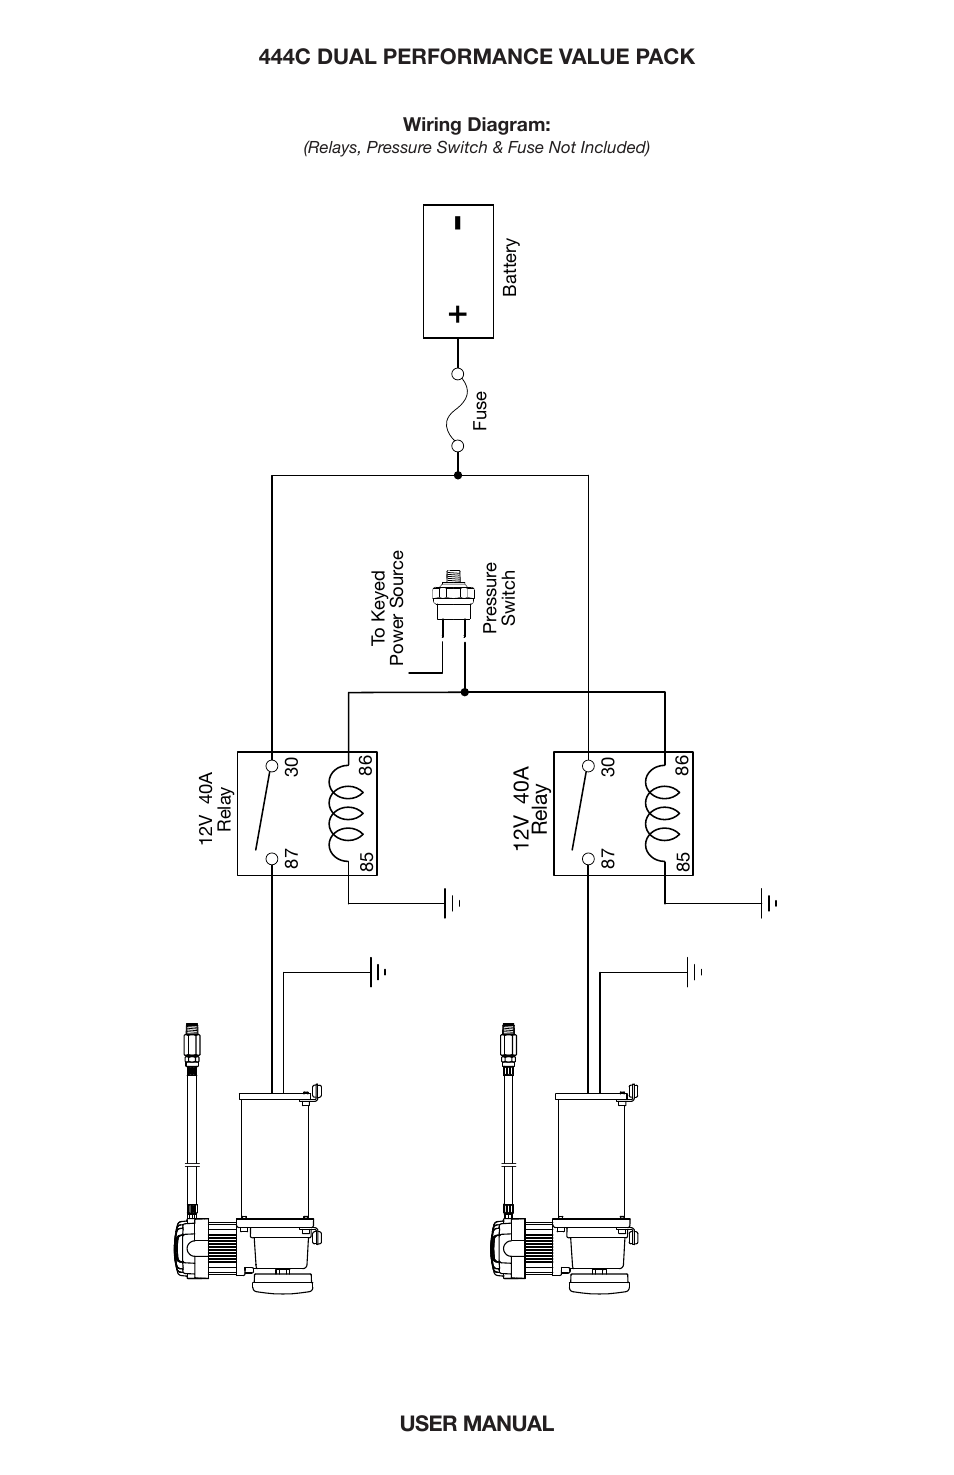 Viair 444c Wiring Diagram